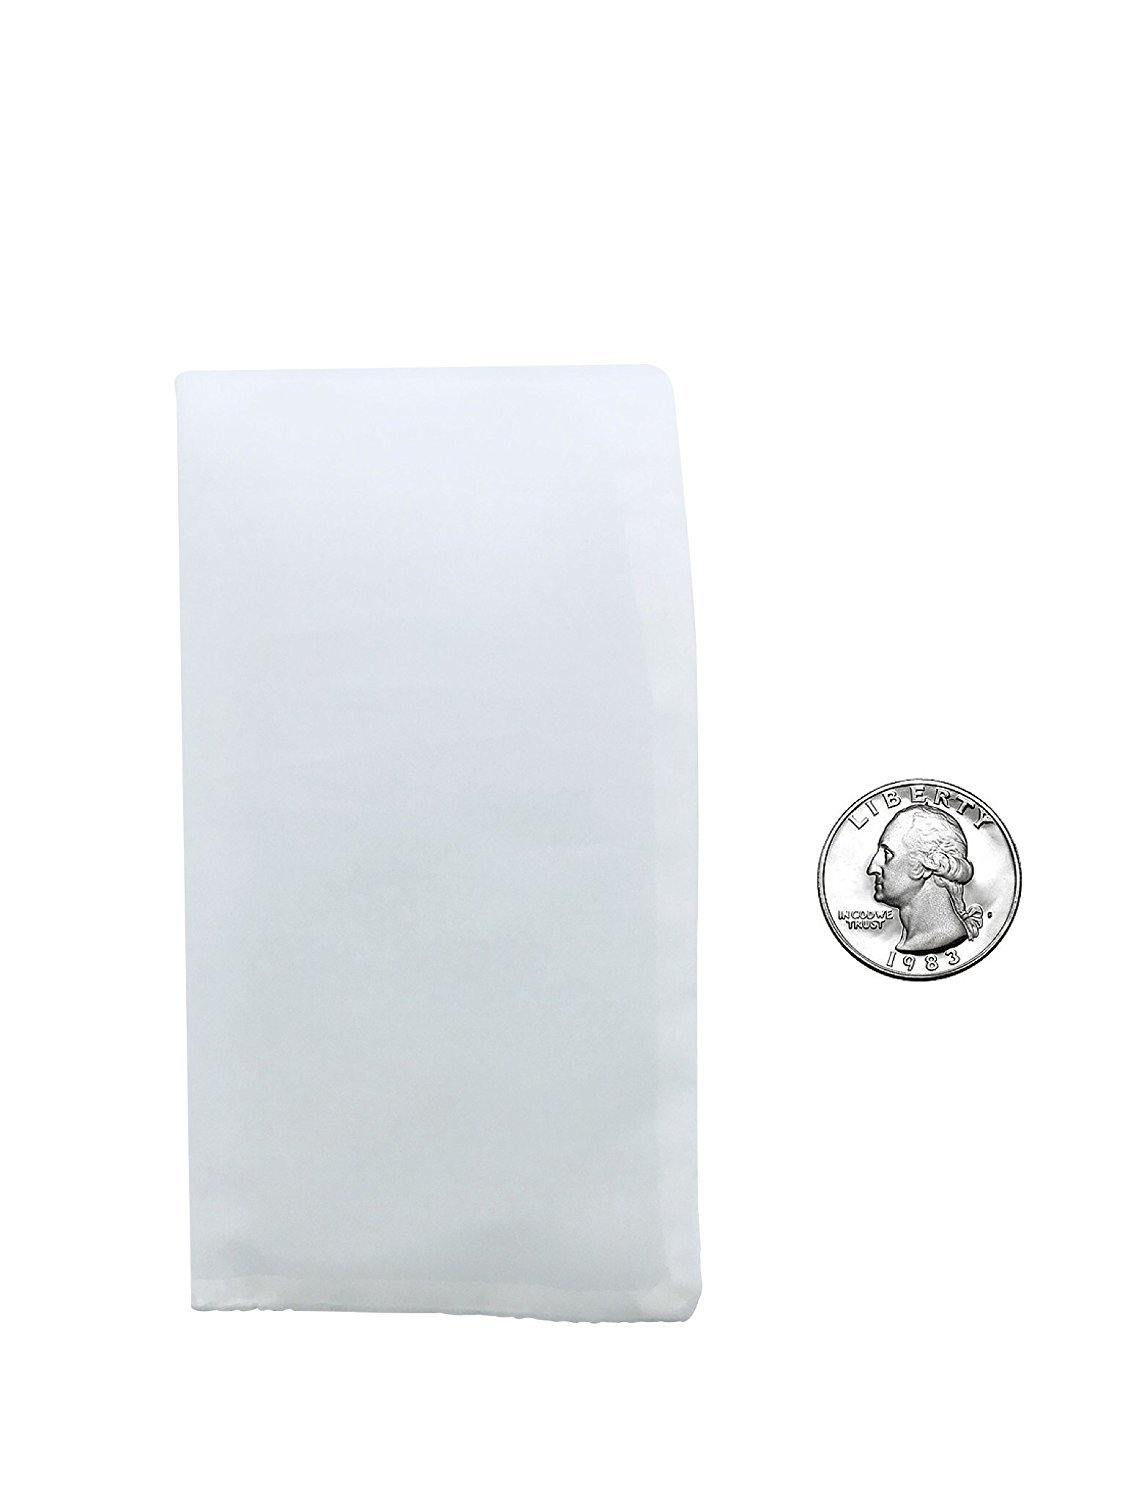 "3"" x 6"" ROSIN BAGS - The Press Club"